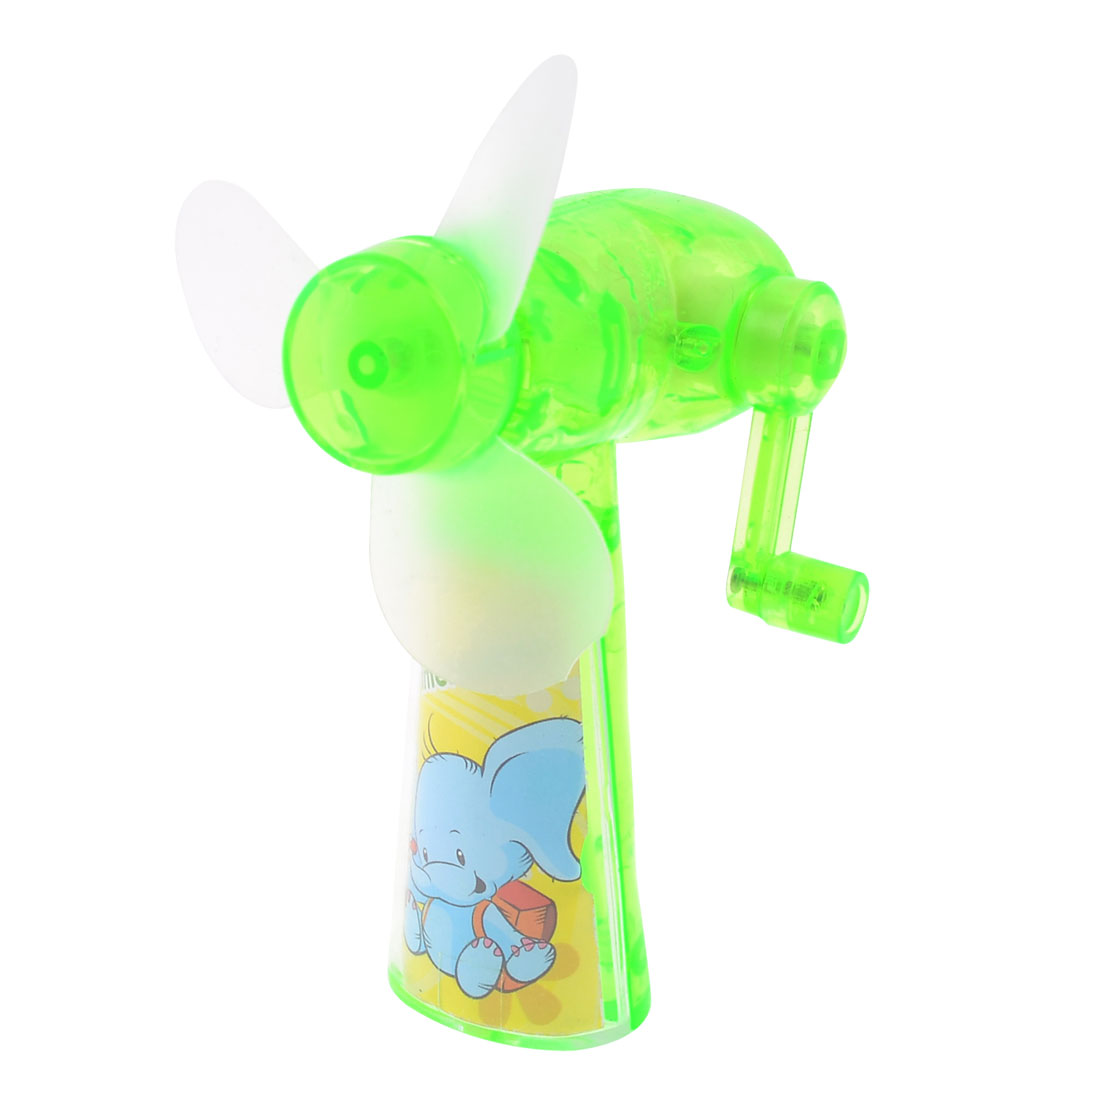 Green Winnower Designed Plastic Portable Camping Hand Crank Cooling MiMi Fan